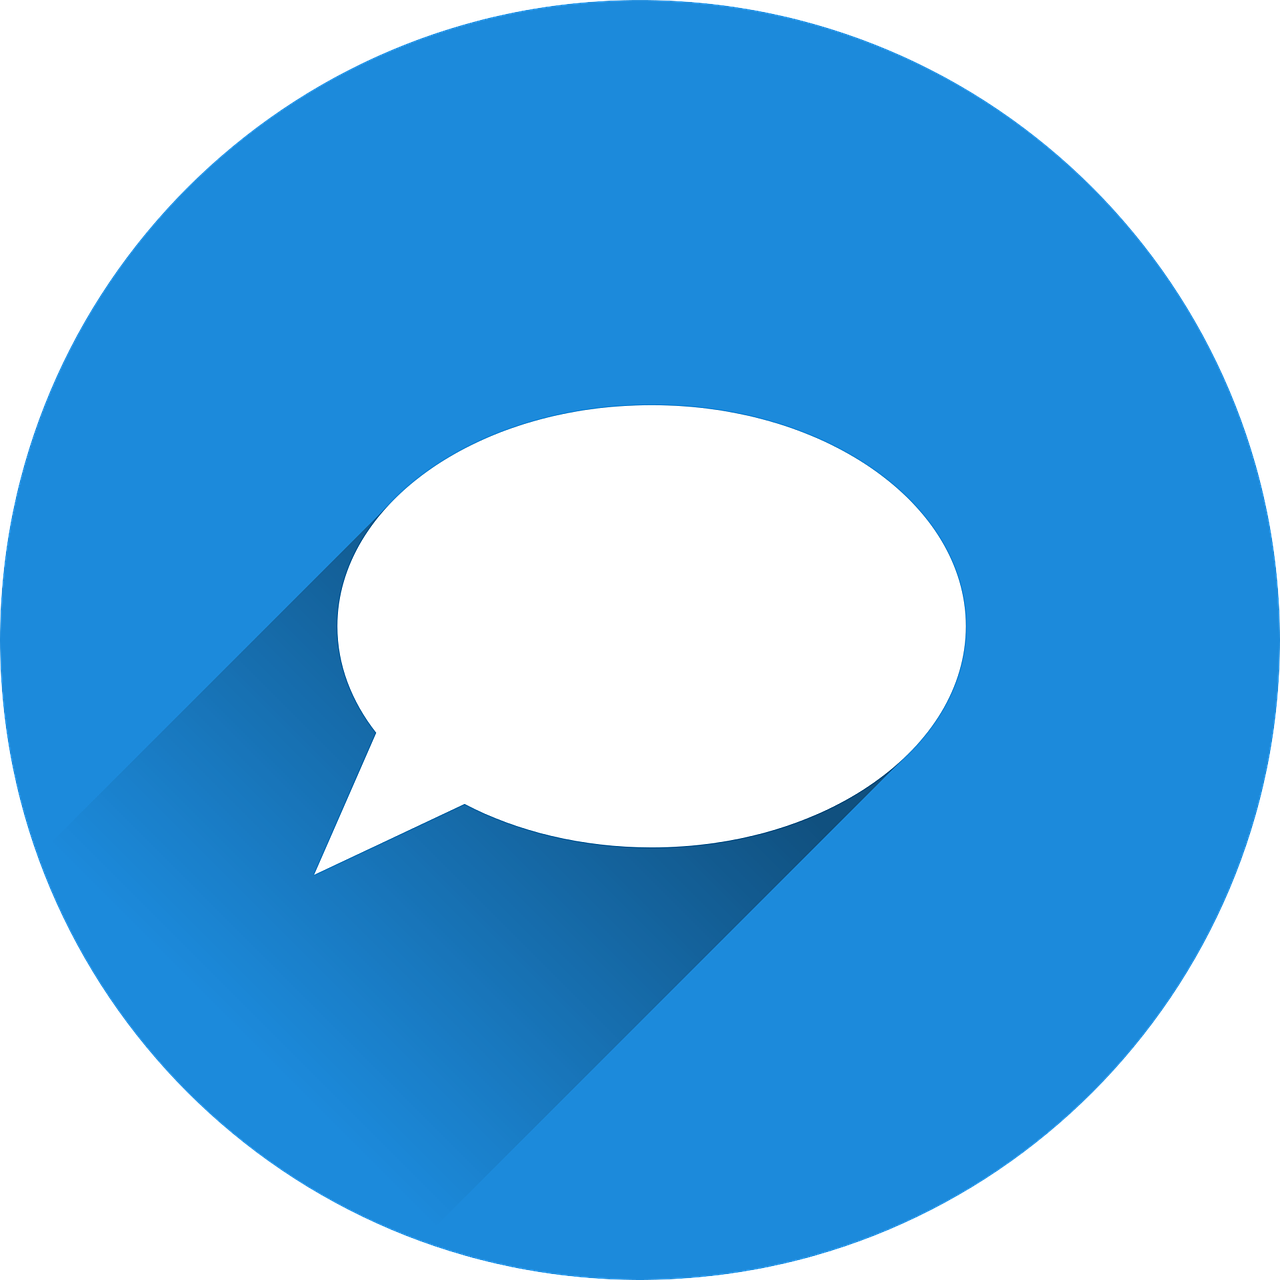 A message icon to represent the feedback tool